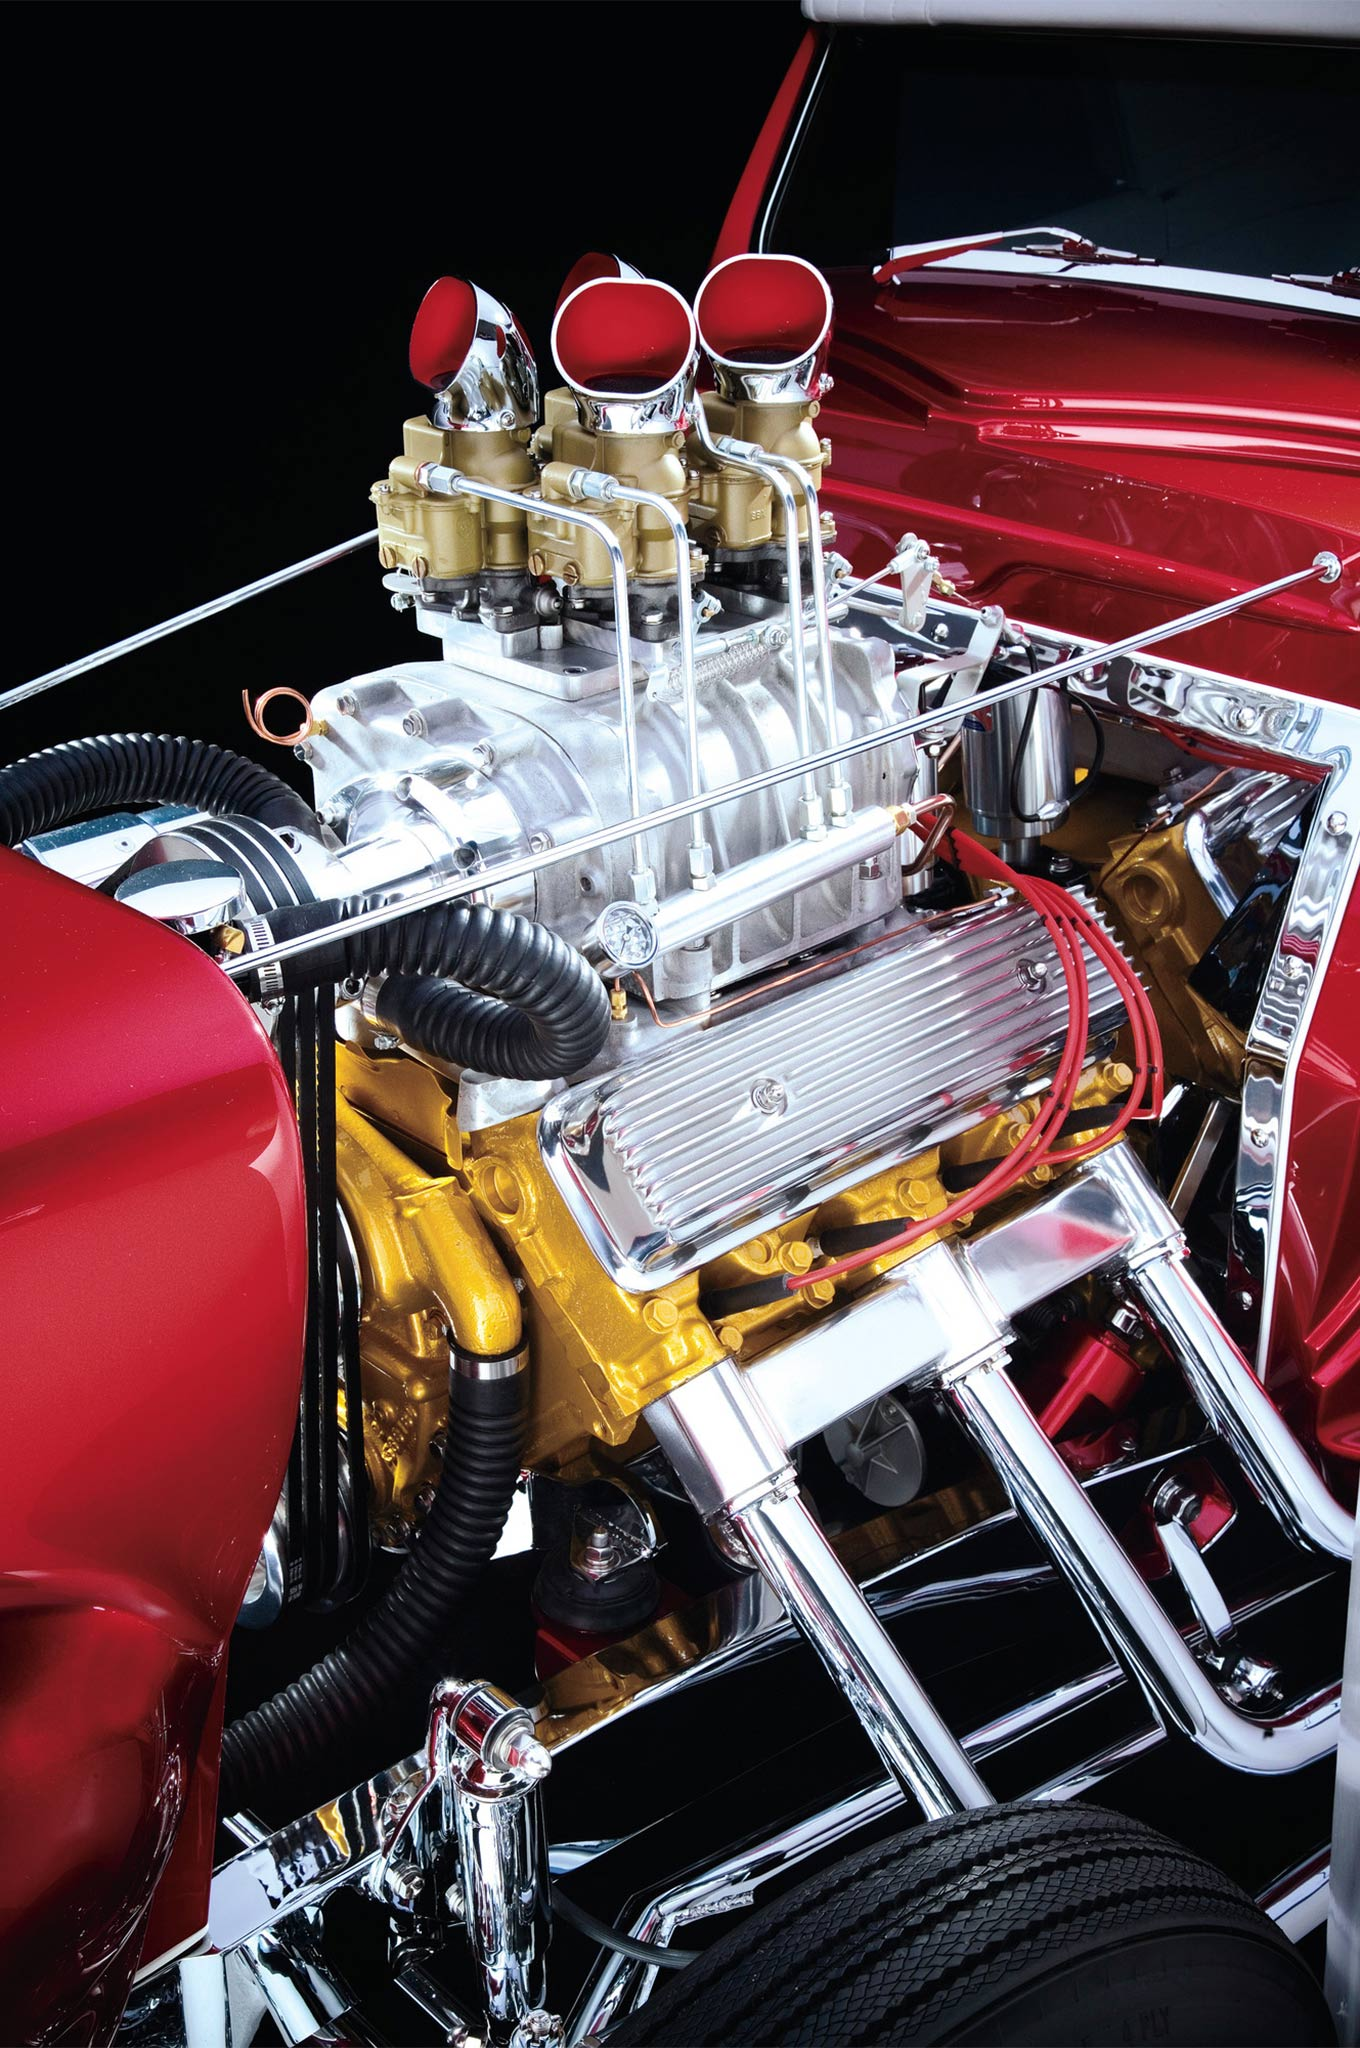 Steve Farkaly at Uncommon Engineering built the 1/8-over 324 Olds. He lucked into the N.O.S. 4-71 Cragar blower but had to craft the drive. Borneman said the condition of the Offenhauser rocker covers inspired the Moon pieces. Believe it or not but the corrugated hose is faithful to the original.